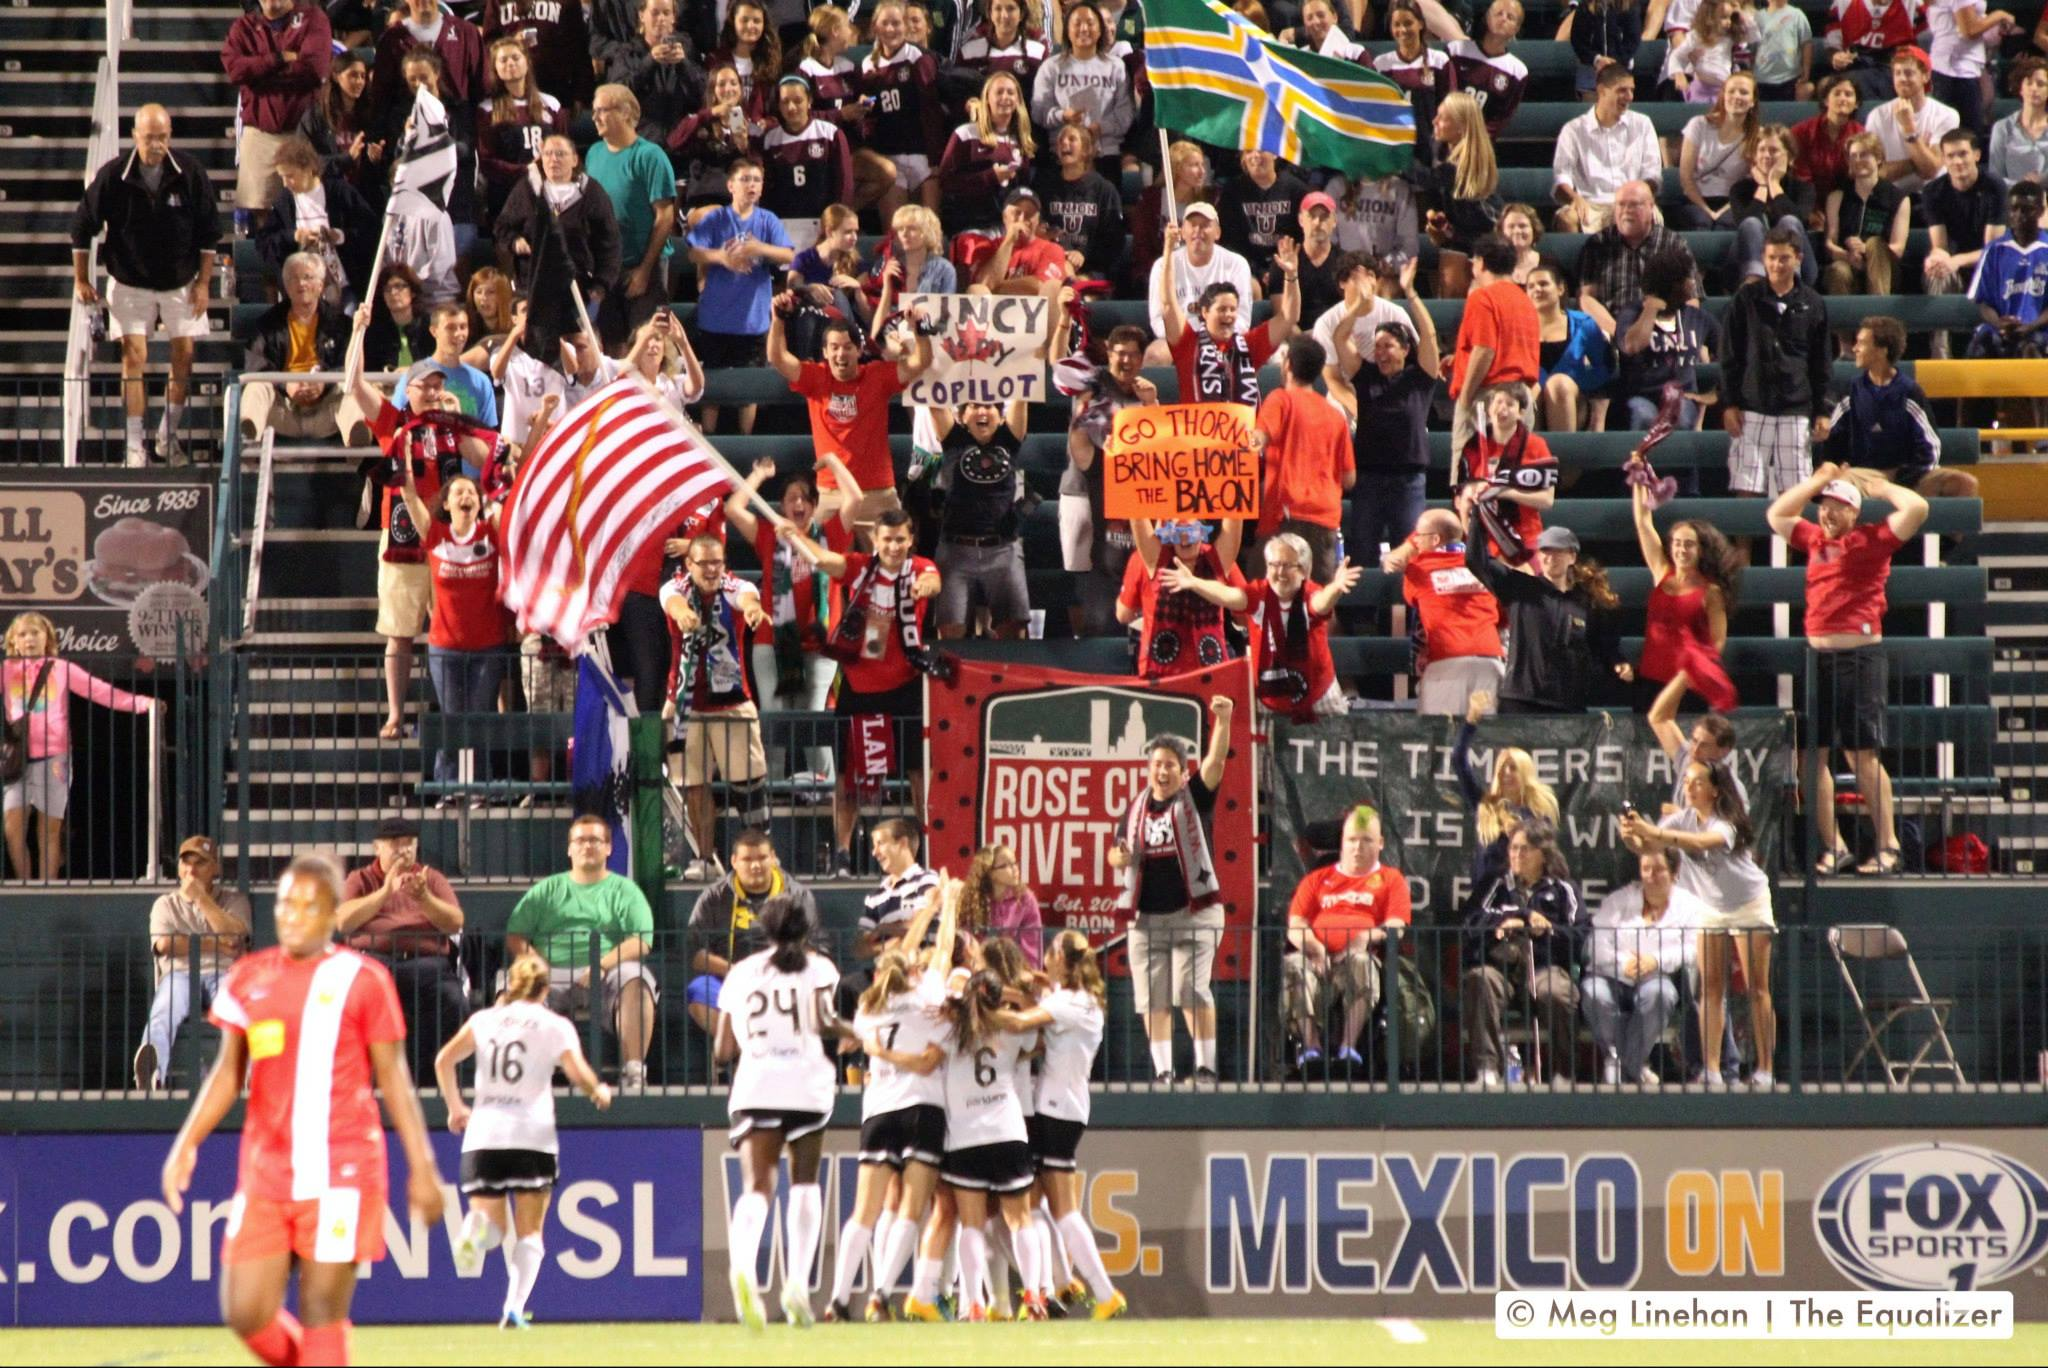 Will the NWSL improve upon the 2013 attendance records? In short: they have to. (Photo copyright Meg Linehan for The Equalizer.)